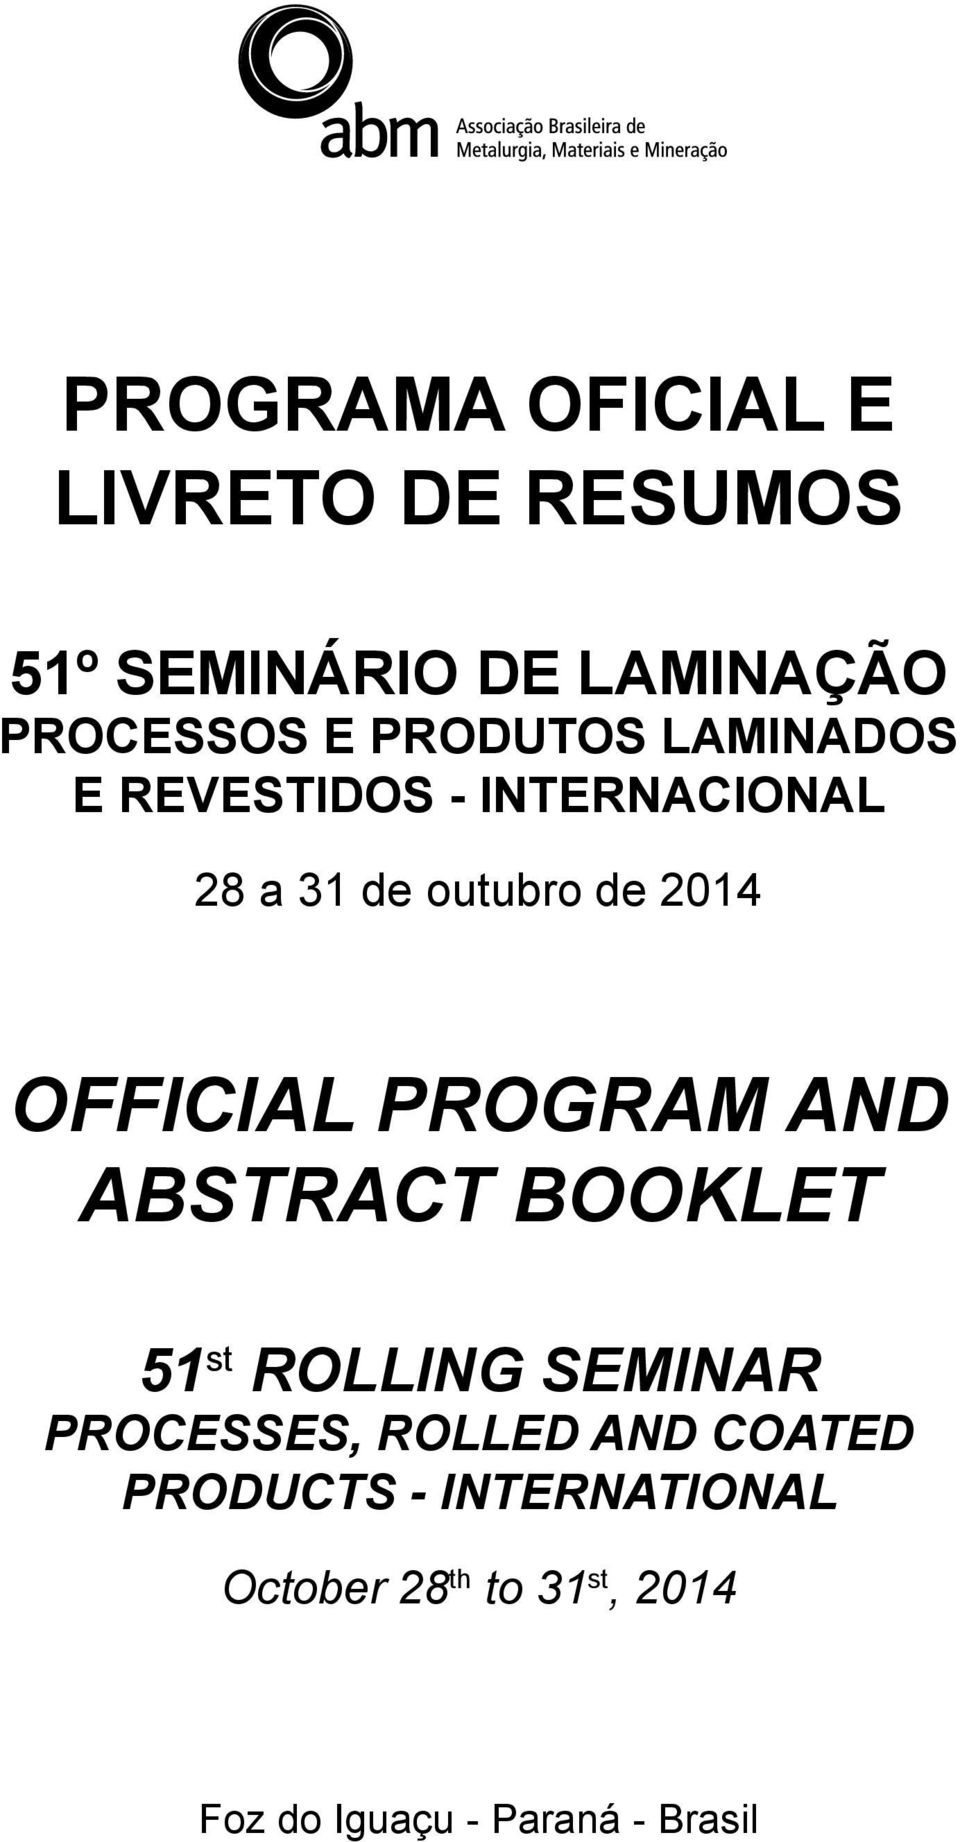 OFFICIAL PROGRAM AND ABSTRACT BOOKLET 51 st ROLLING SEMINAR PROCESSES, ROLLED AND